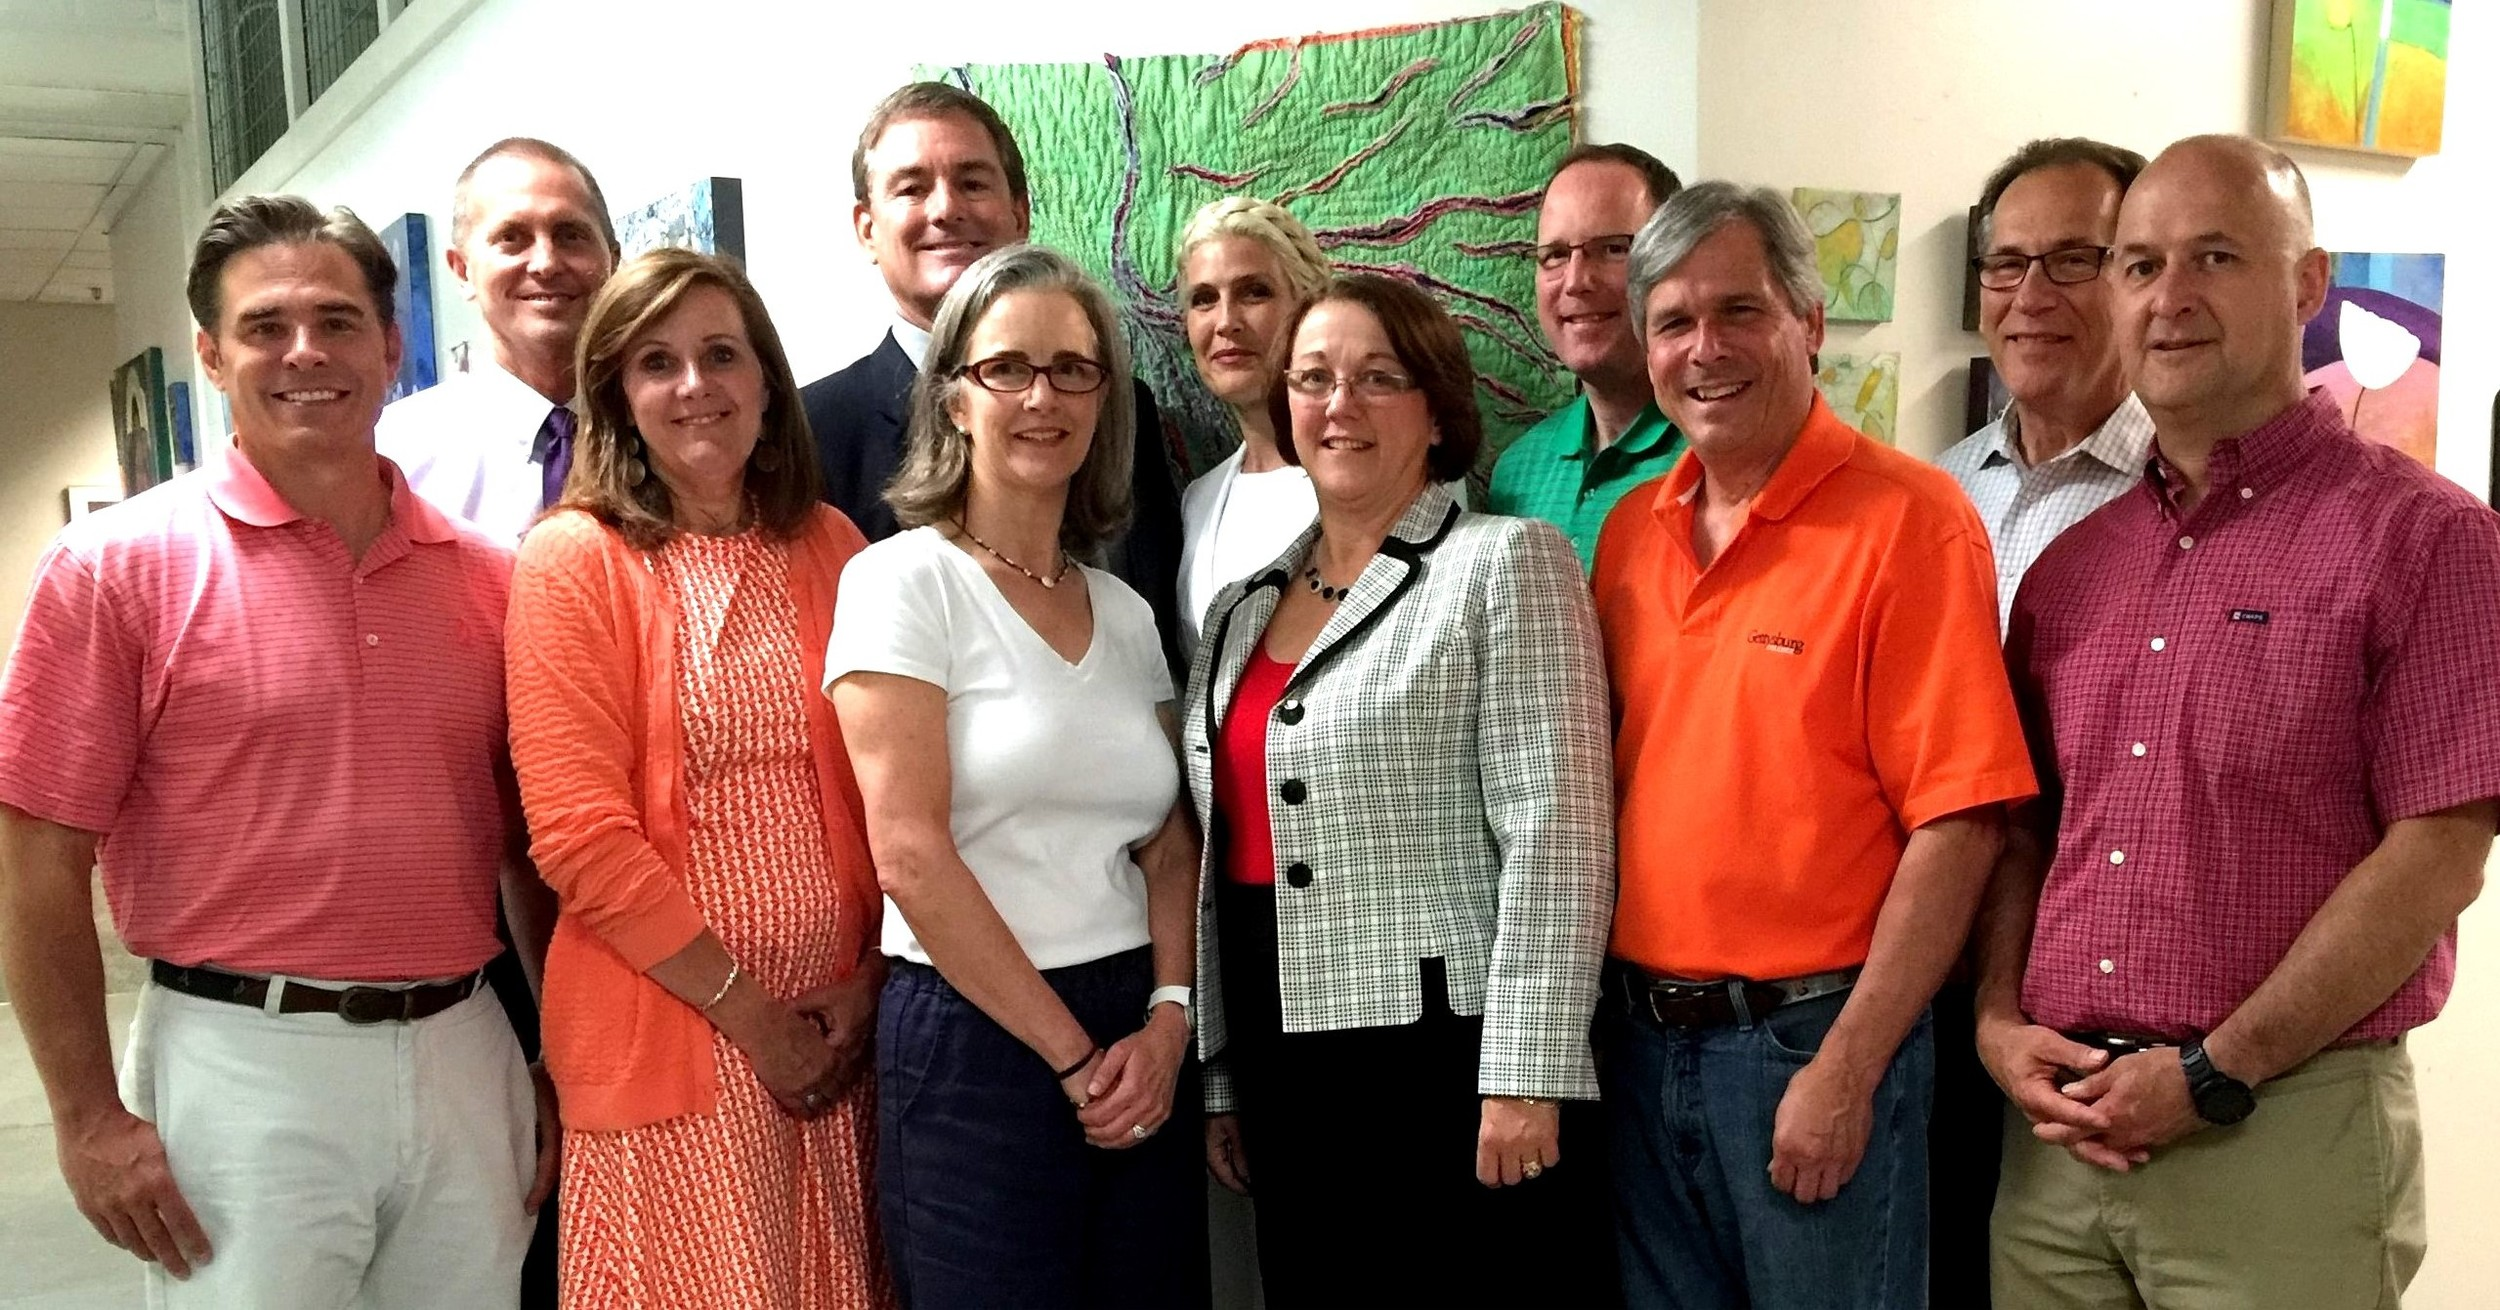 The R.K. Laros Foundation Board of Trustees at the June 2016 Annual Meeting held in 2016 at the Banana Factory in Bethlehem   L-R Back Row Co Treasurer Ron Donchez, Chair R.Keller Laros III, Vice Chair Laura Bennett Shelton, Trustees Ron Madison, Dr. Michael Abgott  L-R Front Row Trustees Scott Mardis, Laurie Gostley Hackett, Ann Laros-Weaver, Diane Donaher, Robert Bilheimer, George Mowrer  Not pictured but attending Co Treasurer Robert Huth, Jr. and Executive Director Sharon Jones Zondag